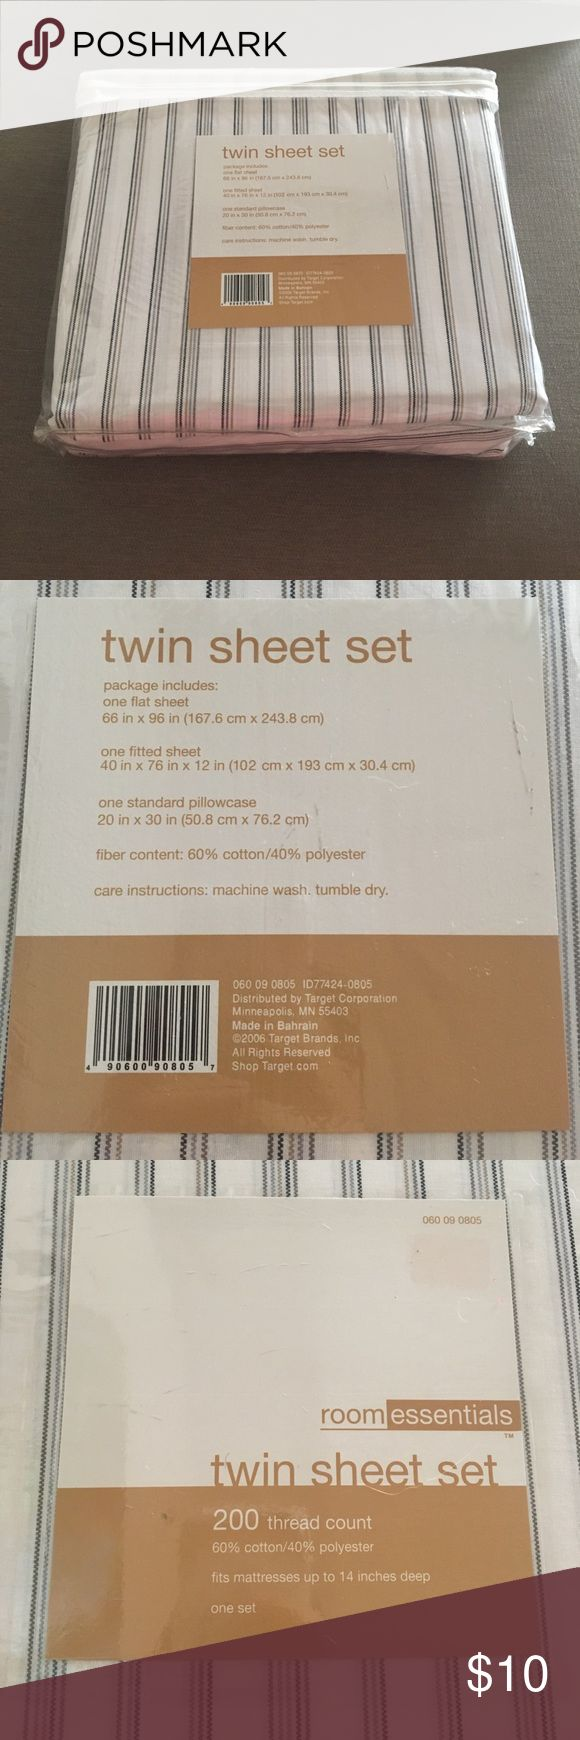 Twin Sheet Set One flat sheet, one fitted sheet and one standard pillowcase. 200 thread count. Room Essentials Other